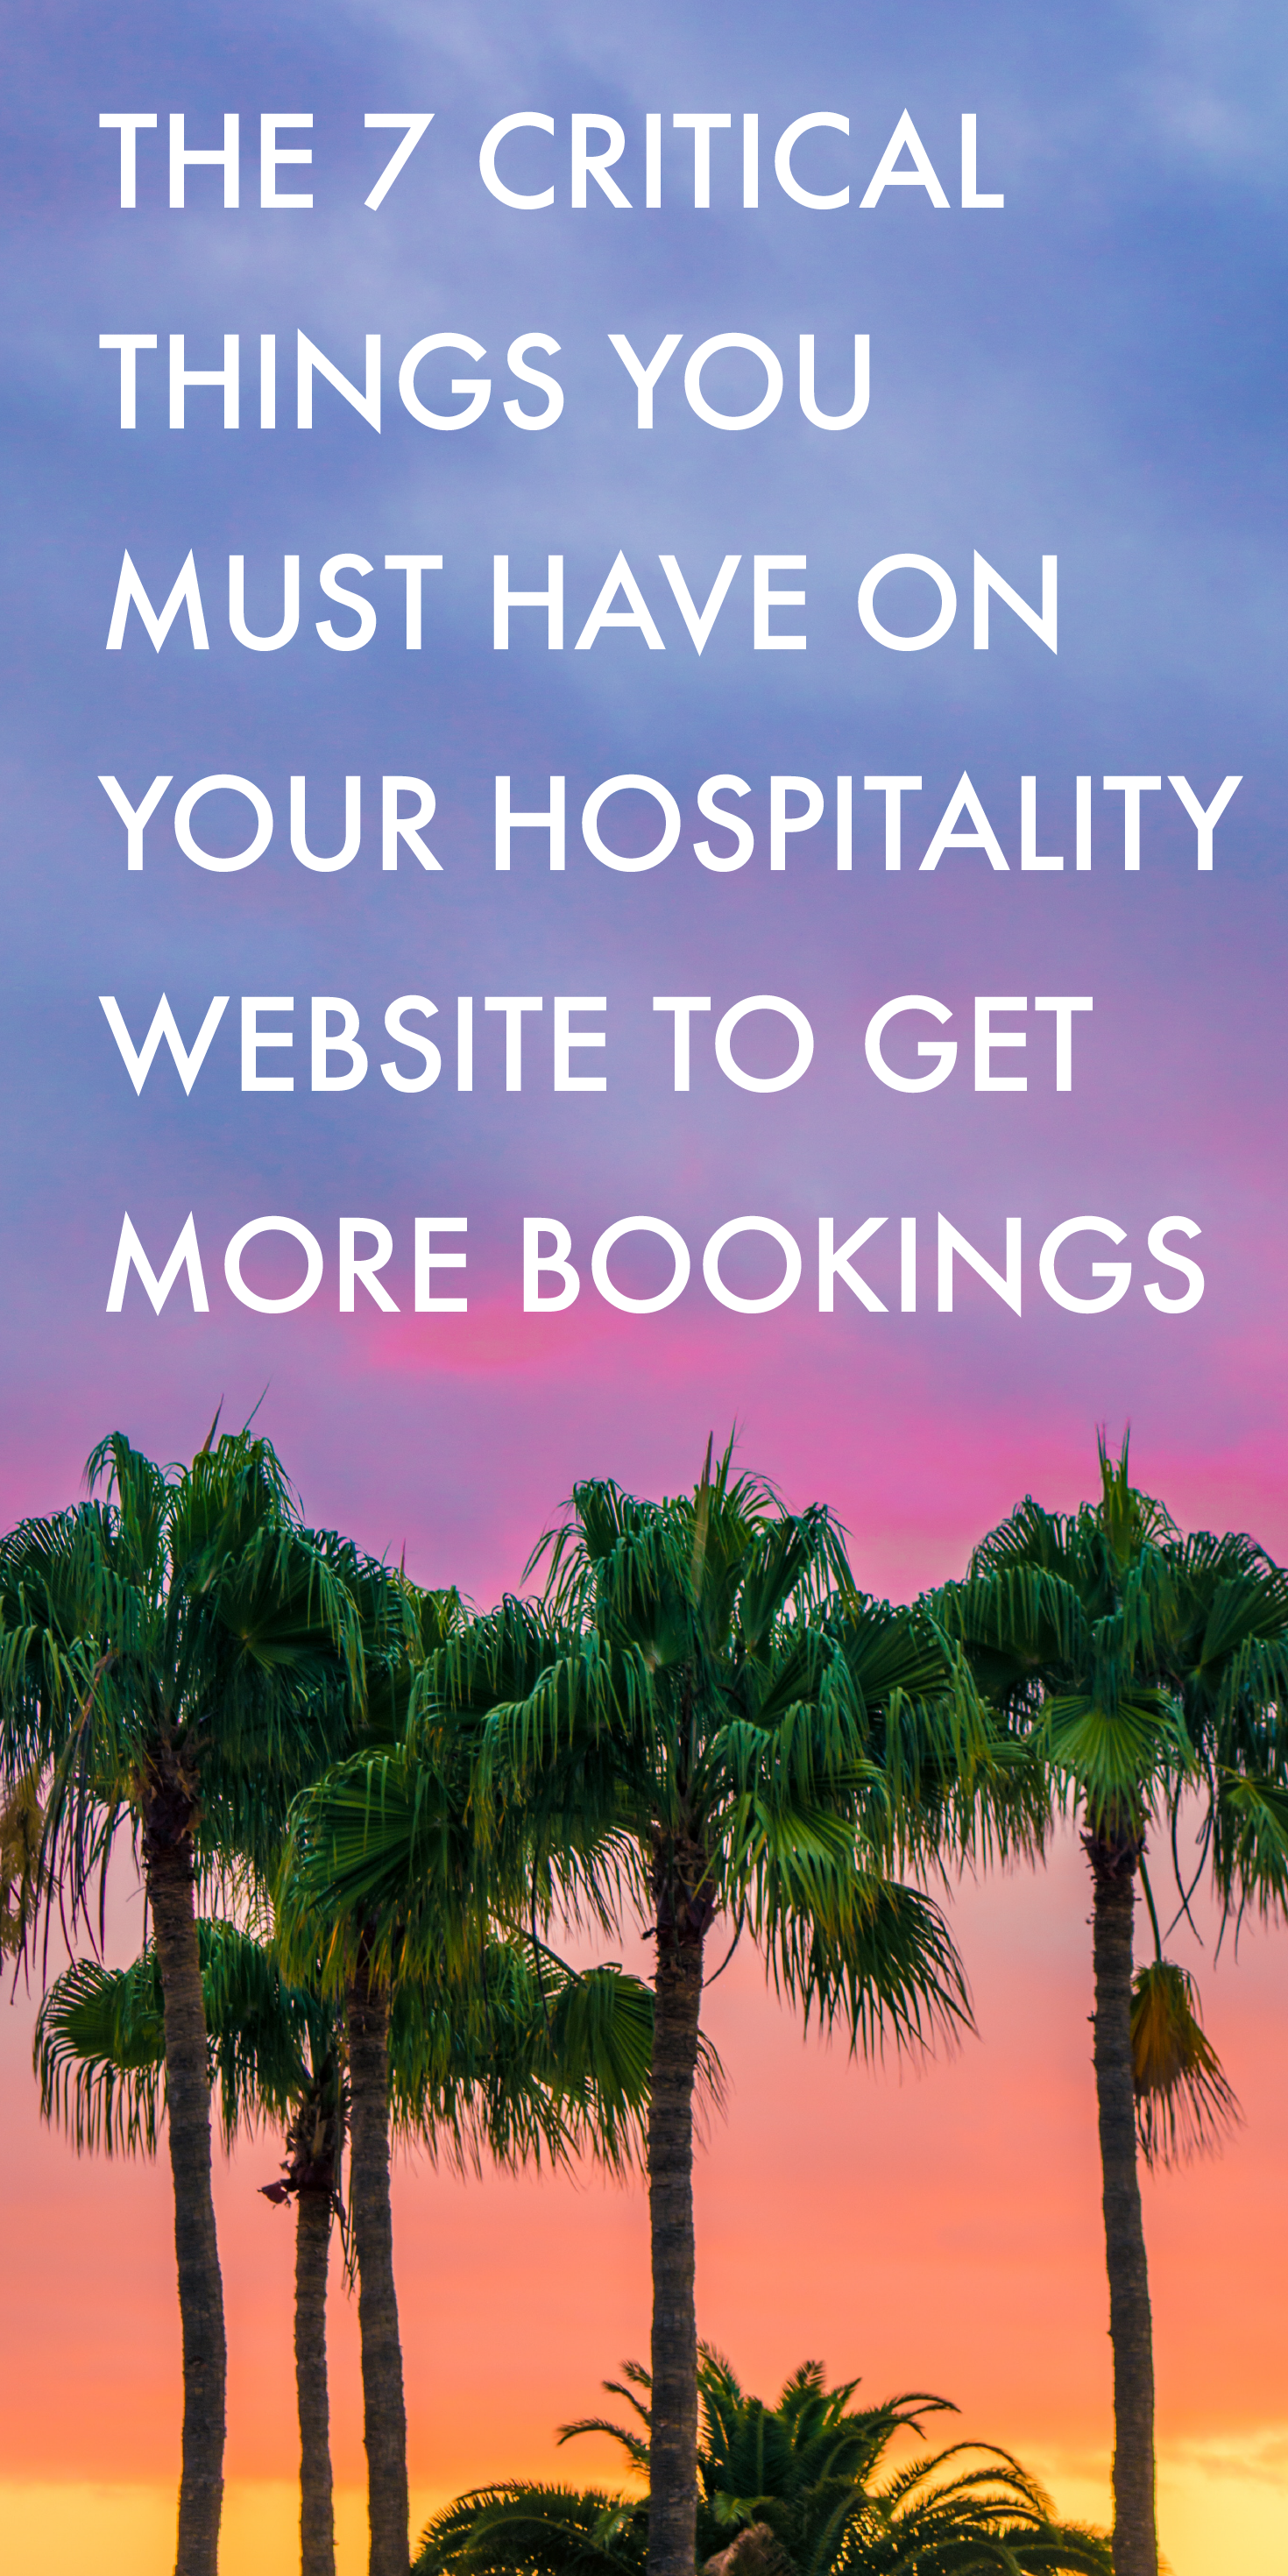 The 7 critical things you must have on your hospitality website